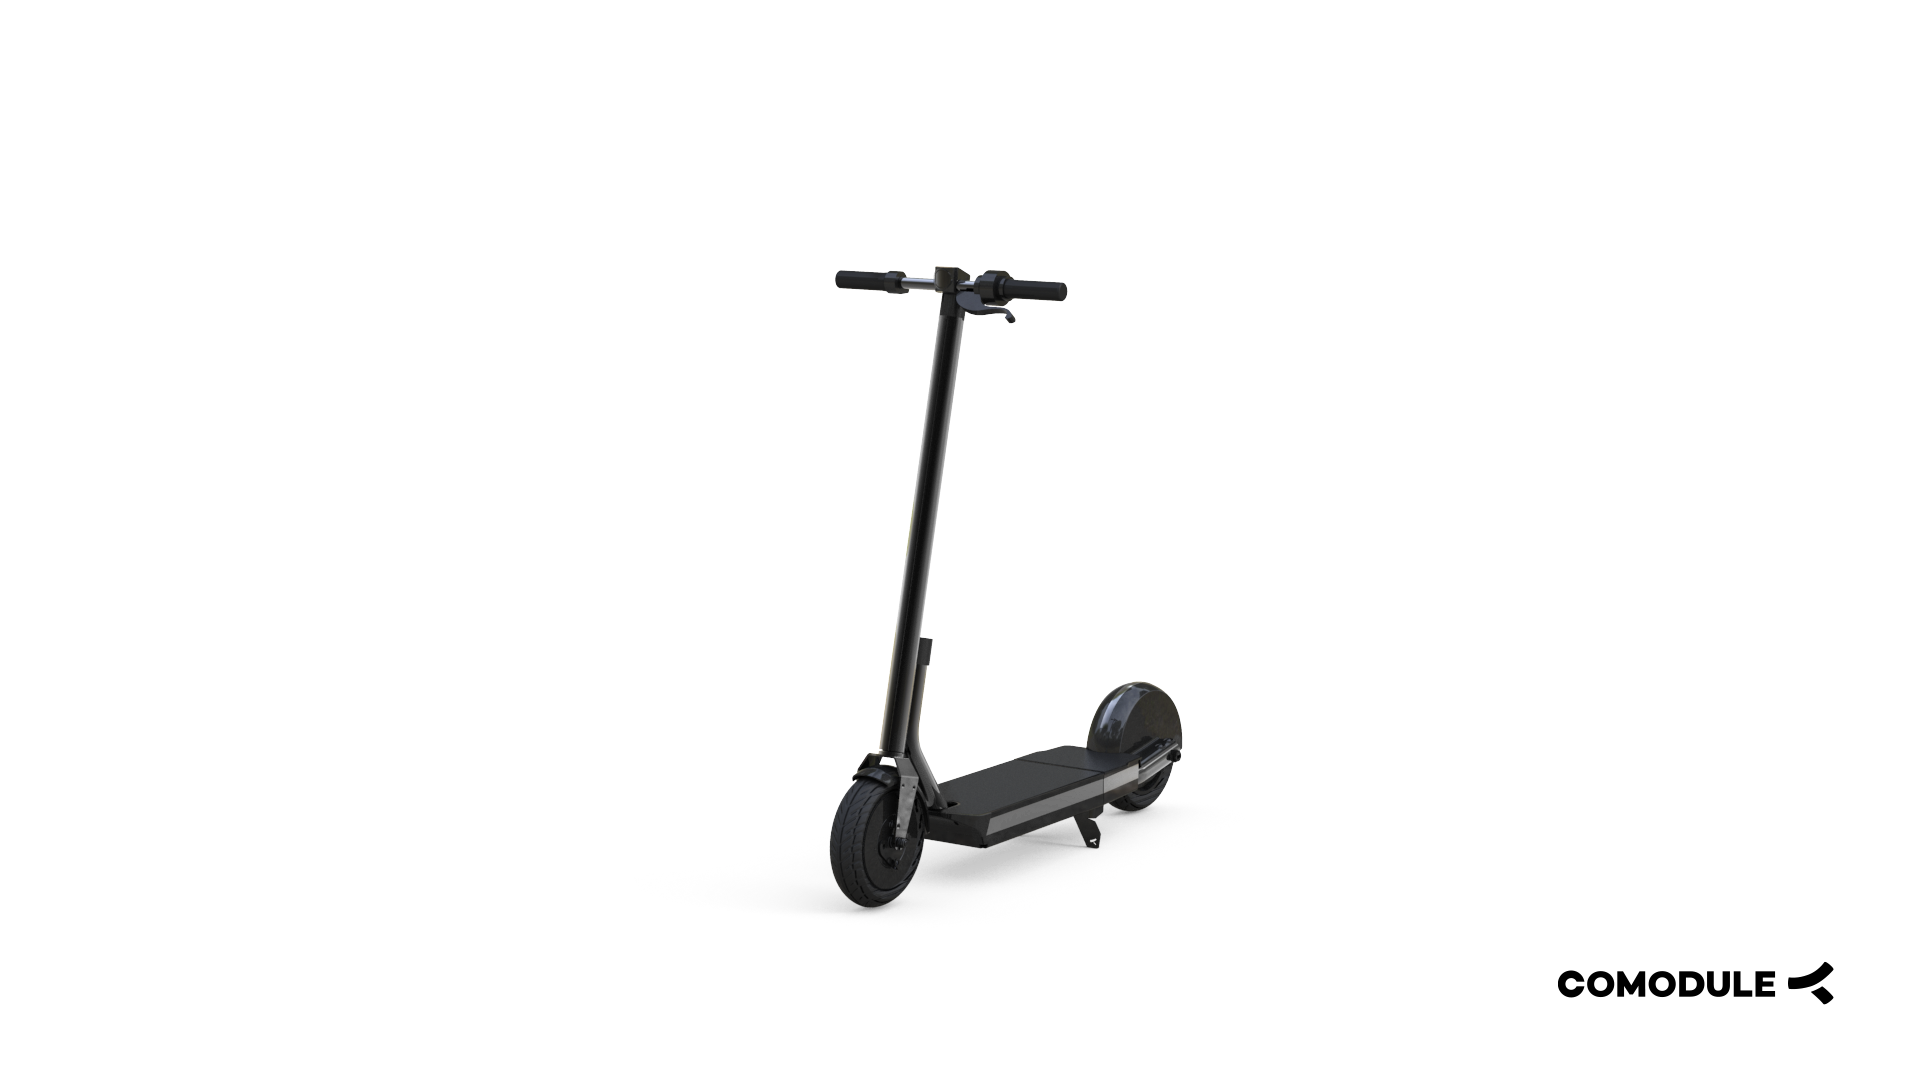 COMODULE is launching the most durable and eco-friendly e-scooter in micromobility